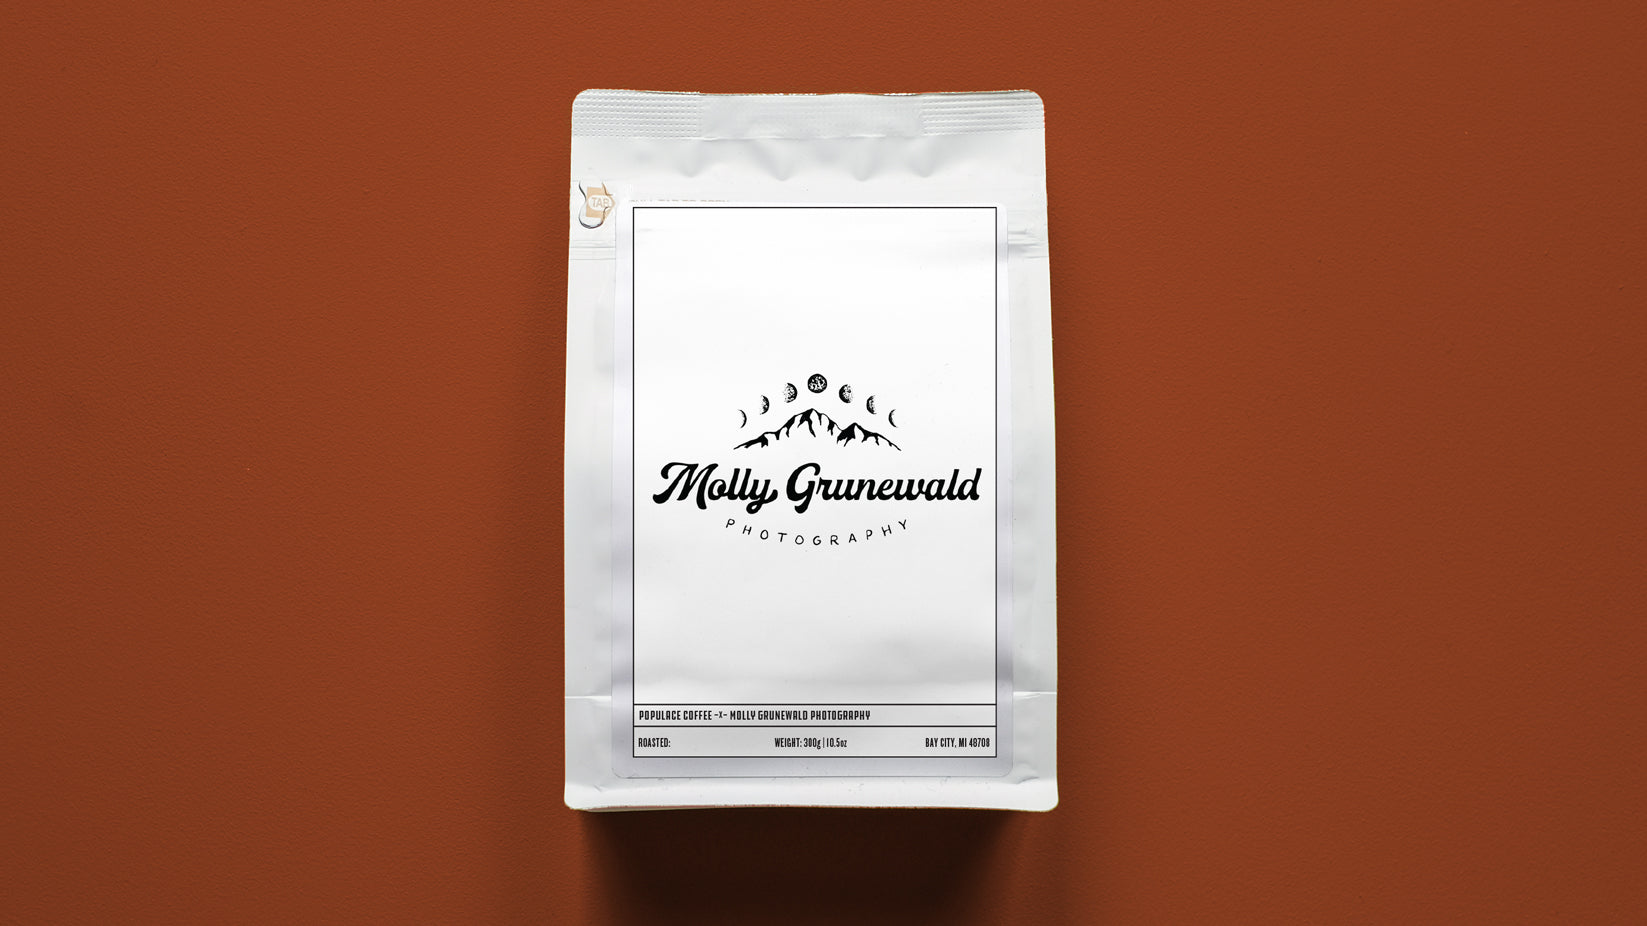 Molly Grunewald Photography Support Coffee